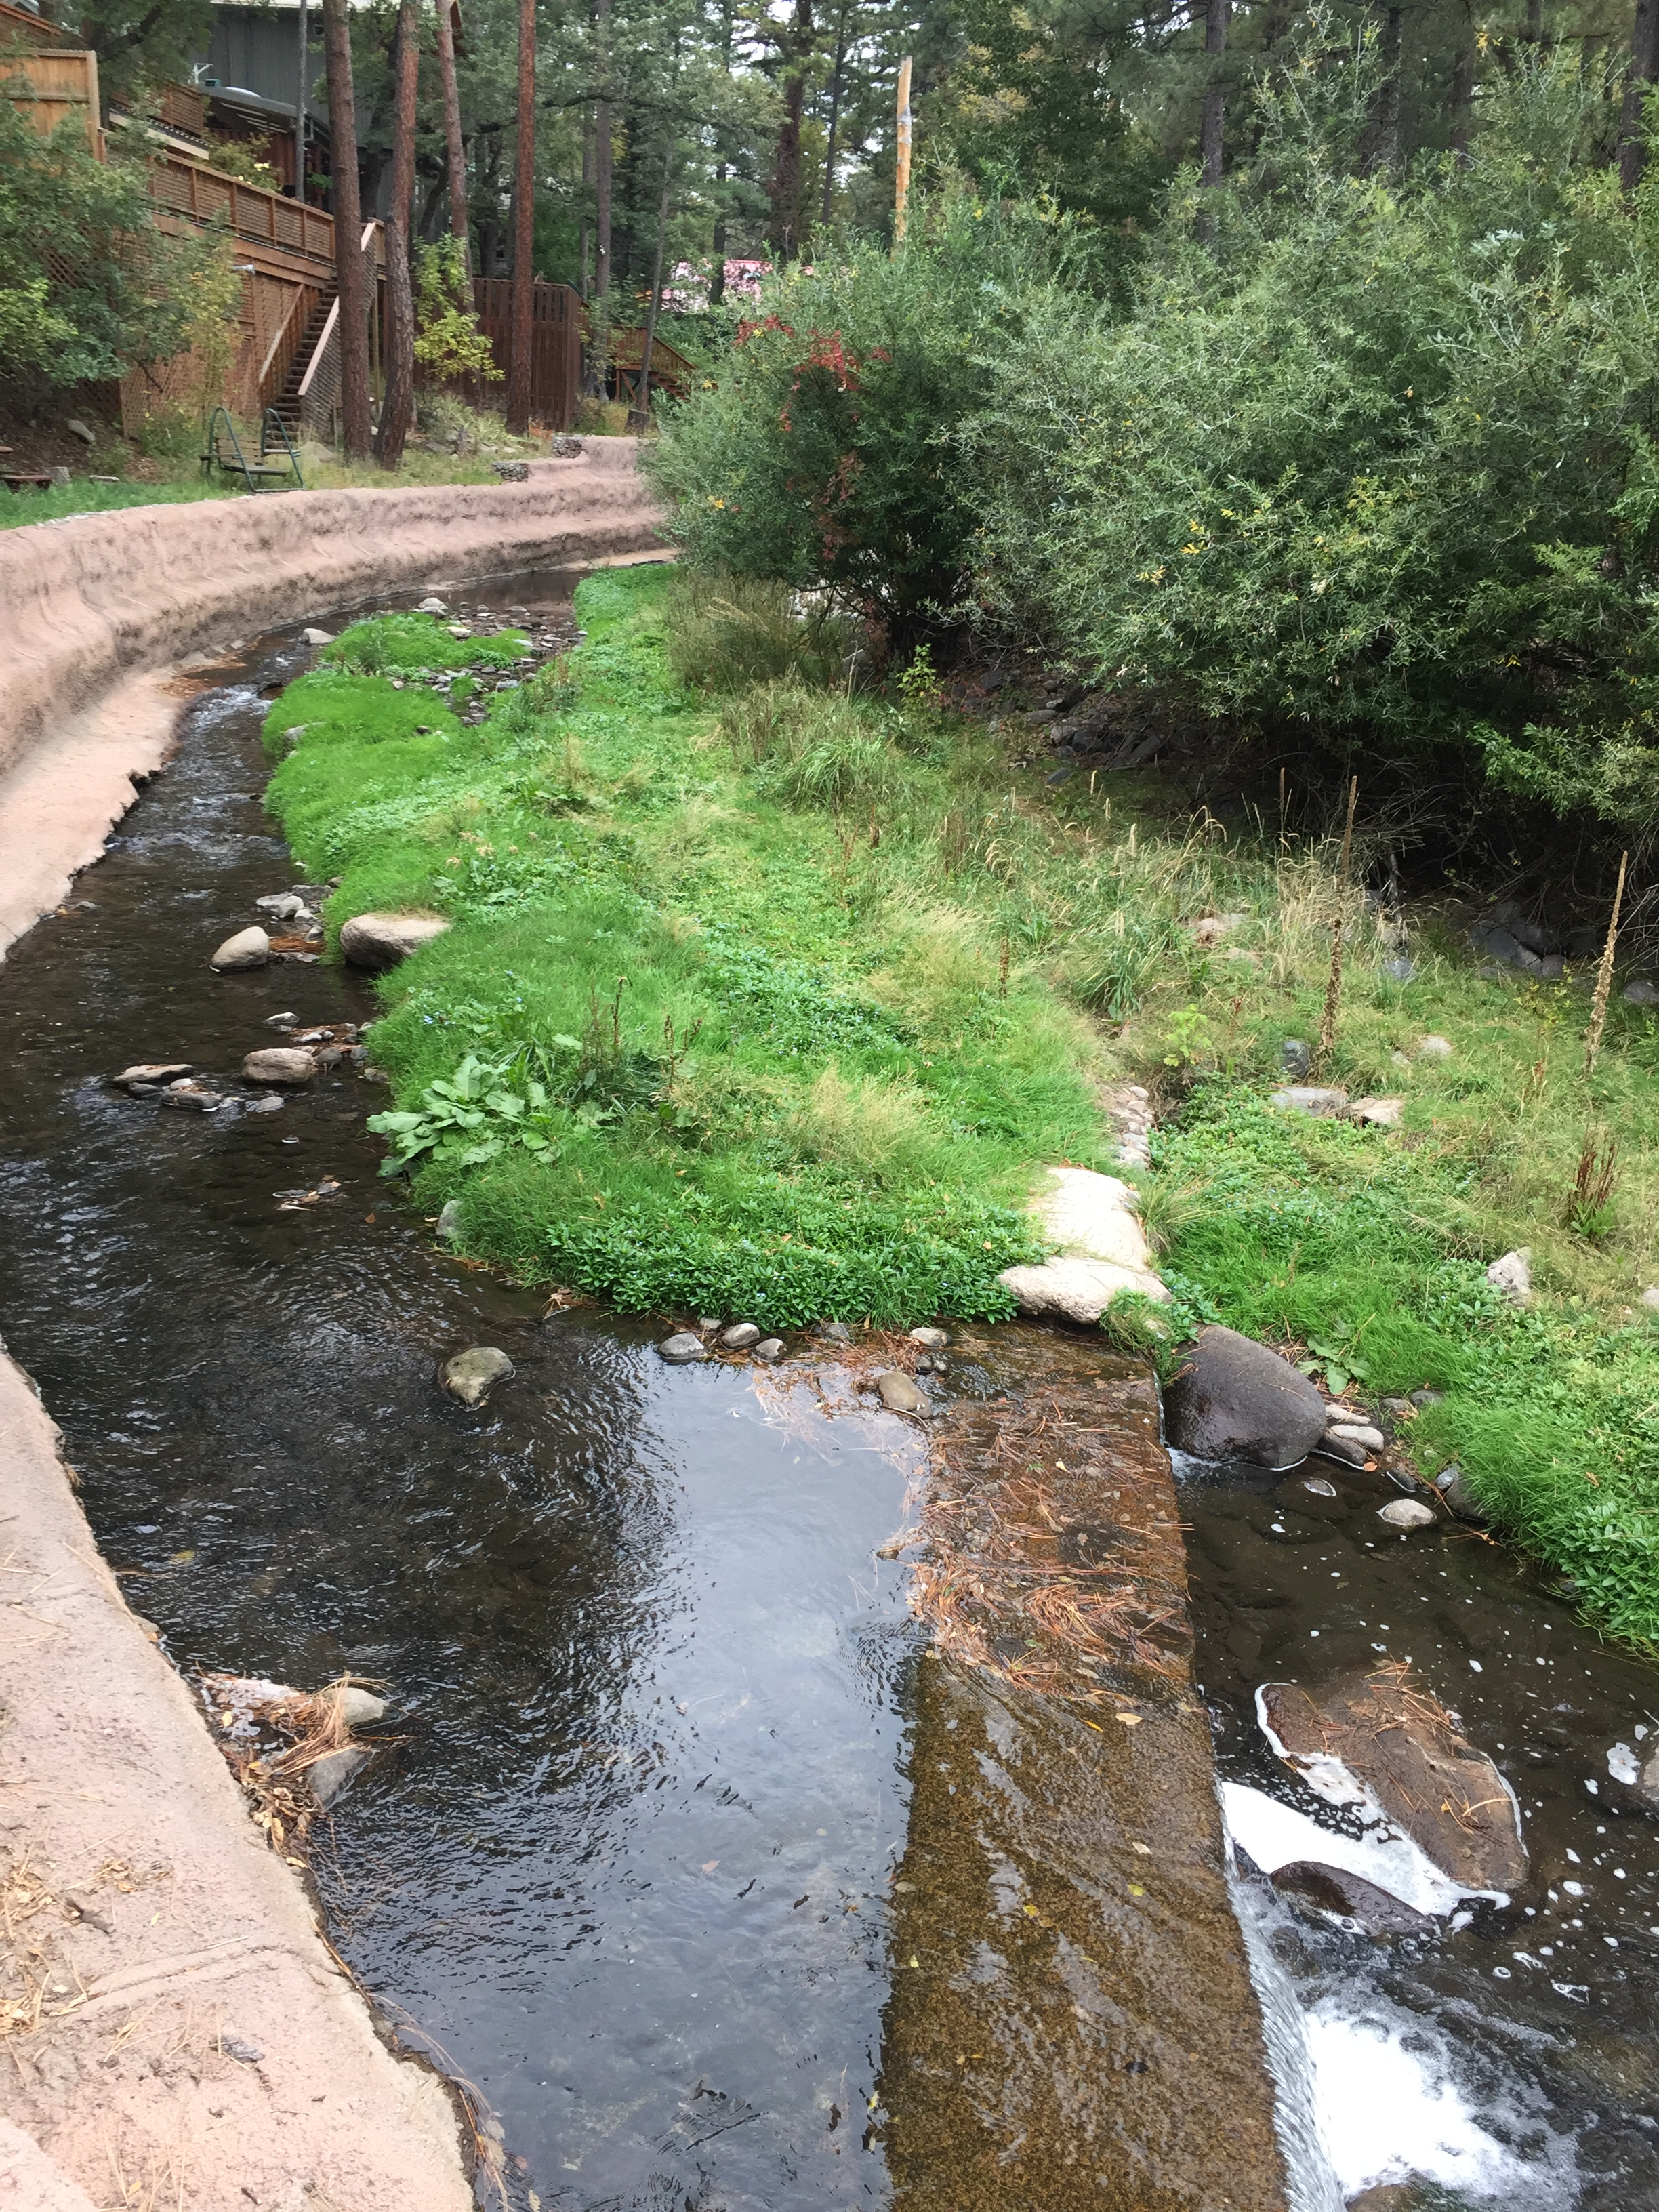 Concrete encased sewer line in Upper Canyon to be rehabilitated and armored